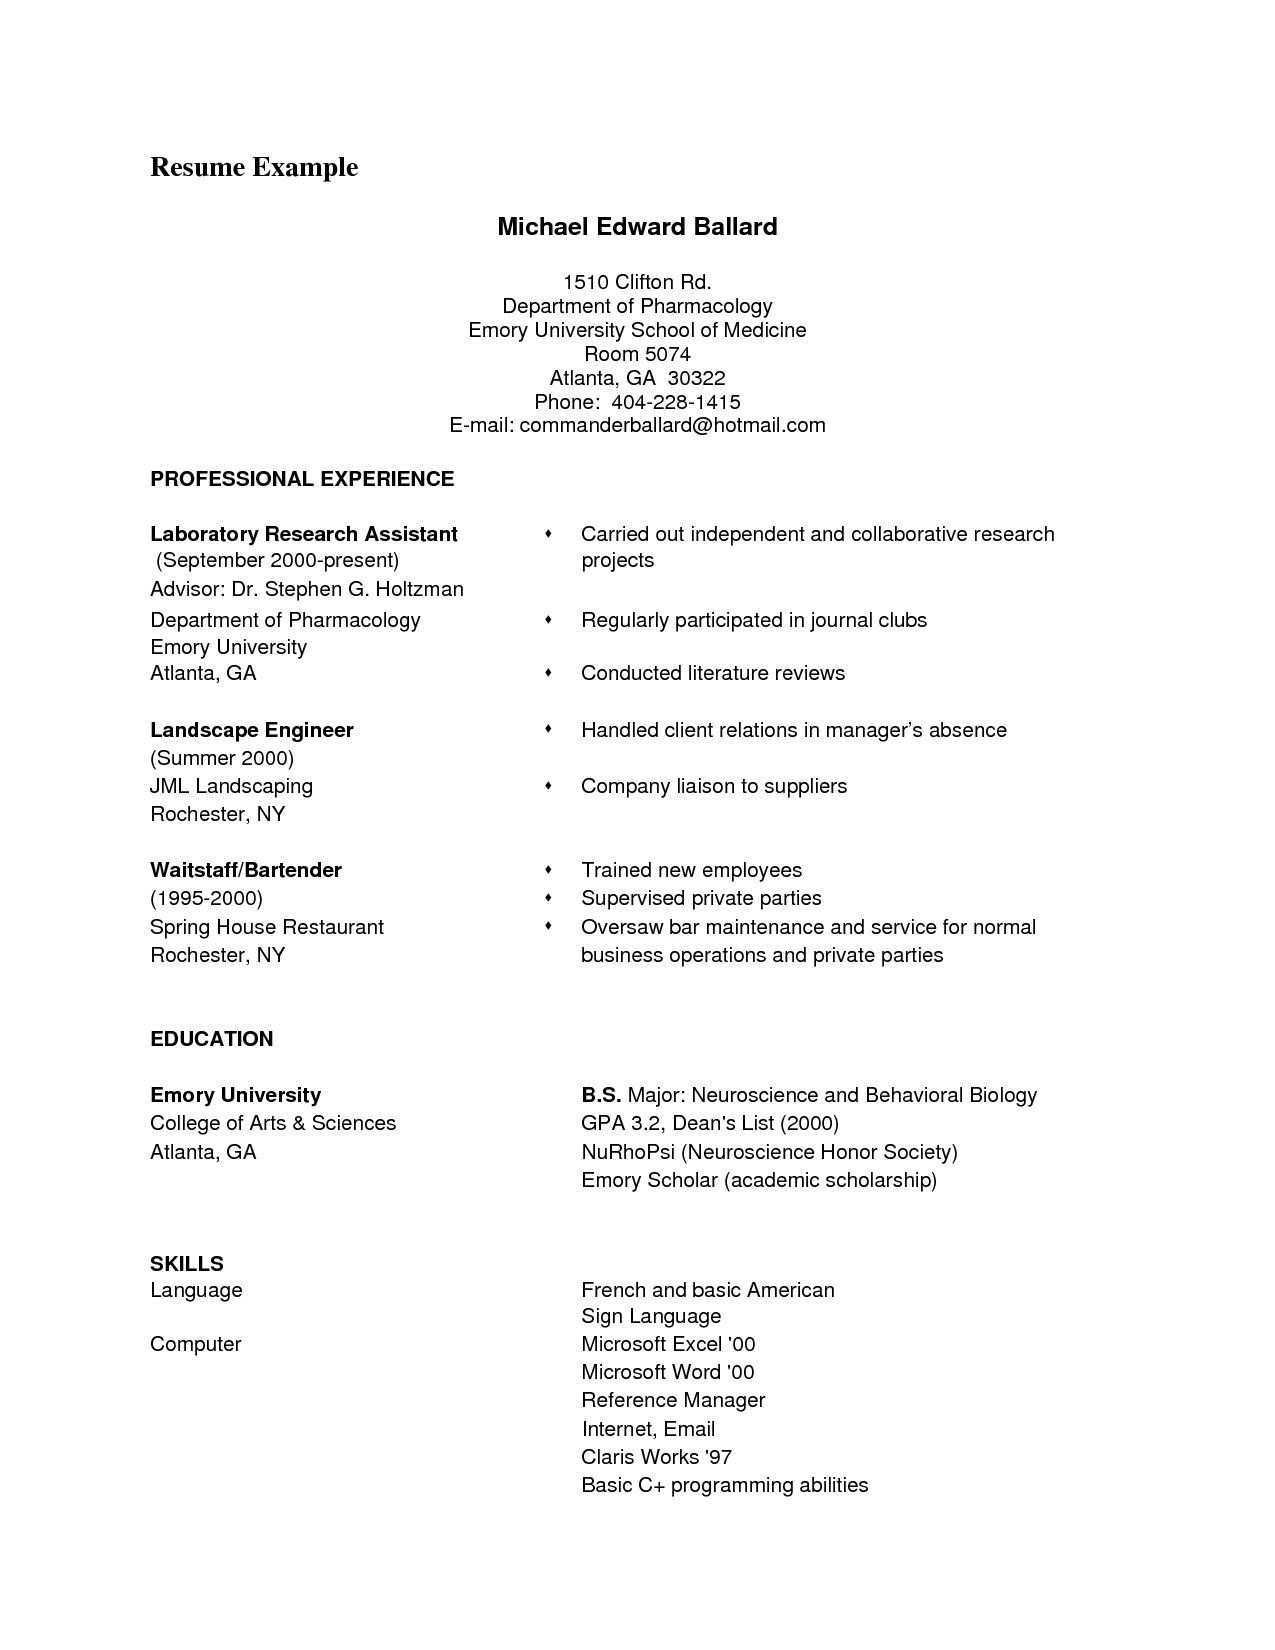 resume template powerpoint Collection-Classic Resume Templates ¢Ë†Å¡ Powerpoint Templates for Biology New Prophoto Templates 0d 16-t